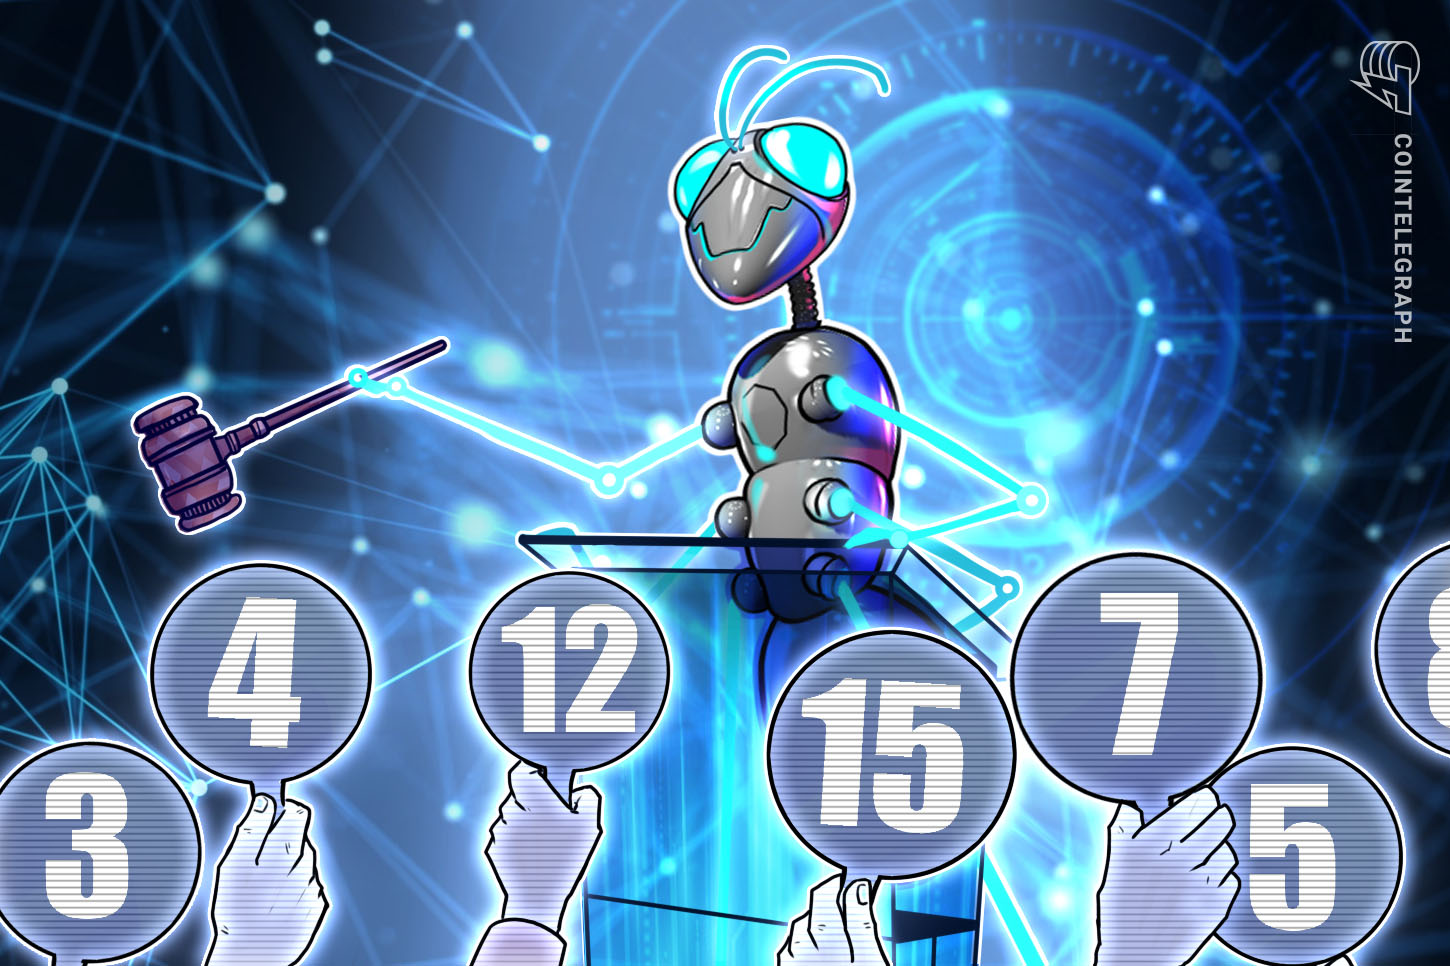 Sotheby's moves $10 million CryptoPunk to solo auction event